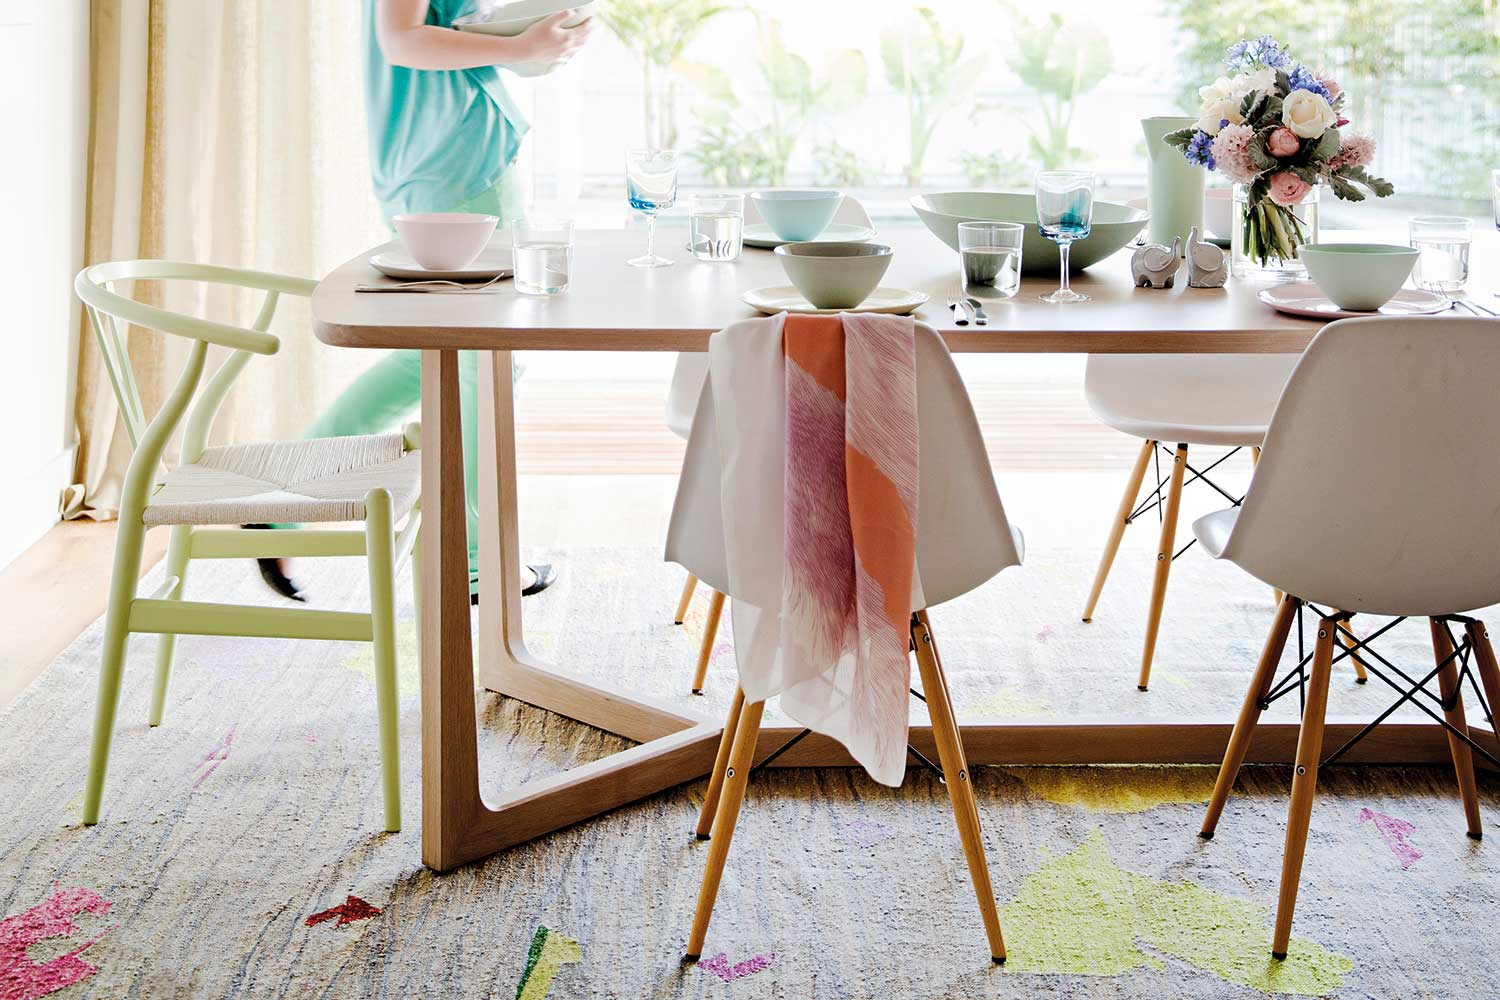 Mismatched Dining Chairs How To Mismatch Your Dining Chairs On Purpose Home